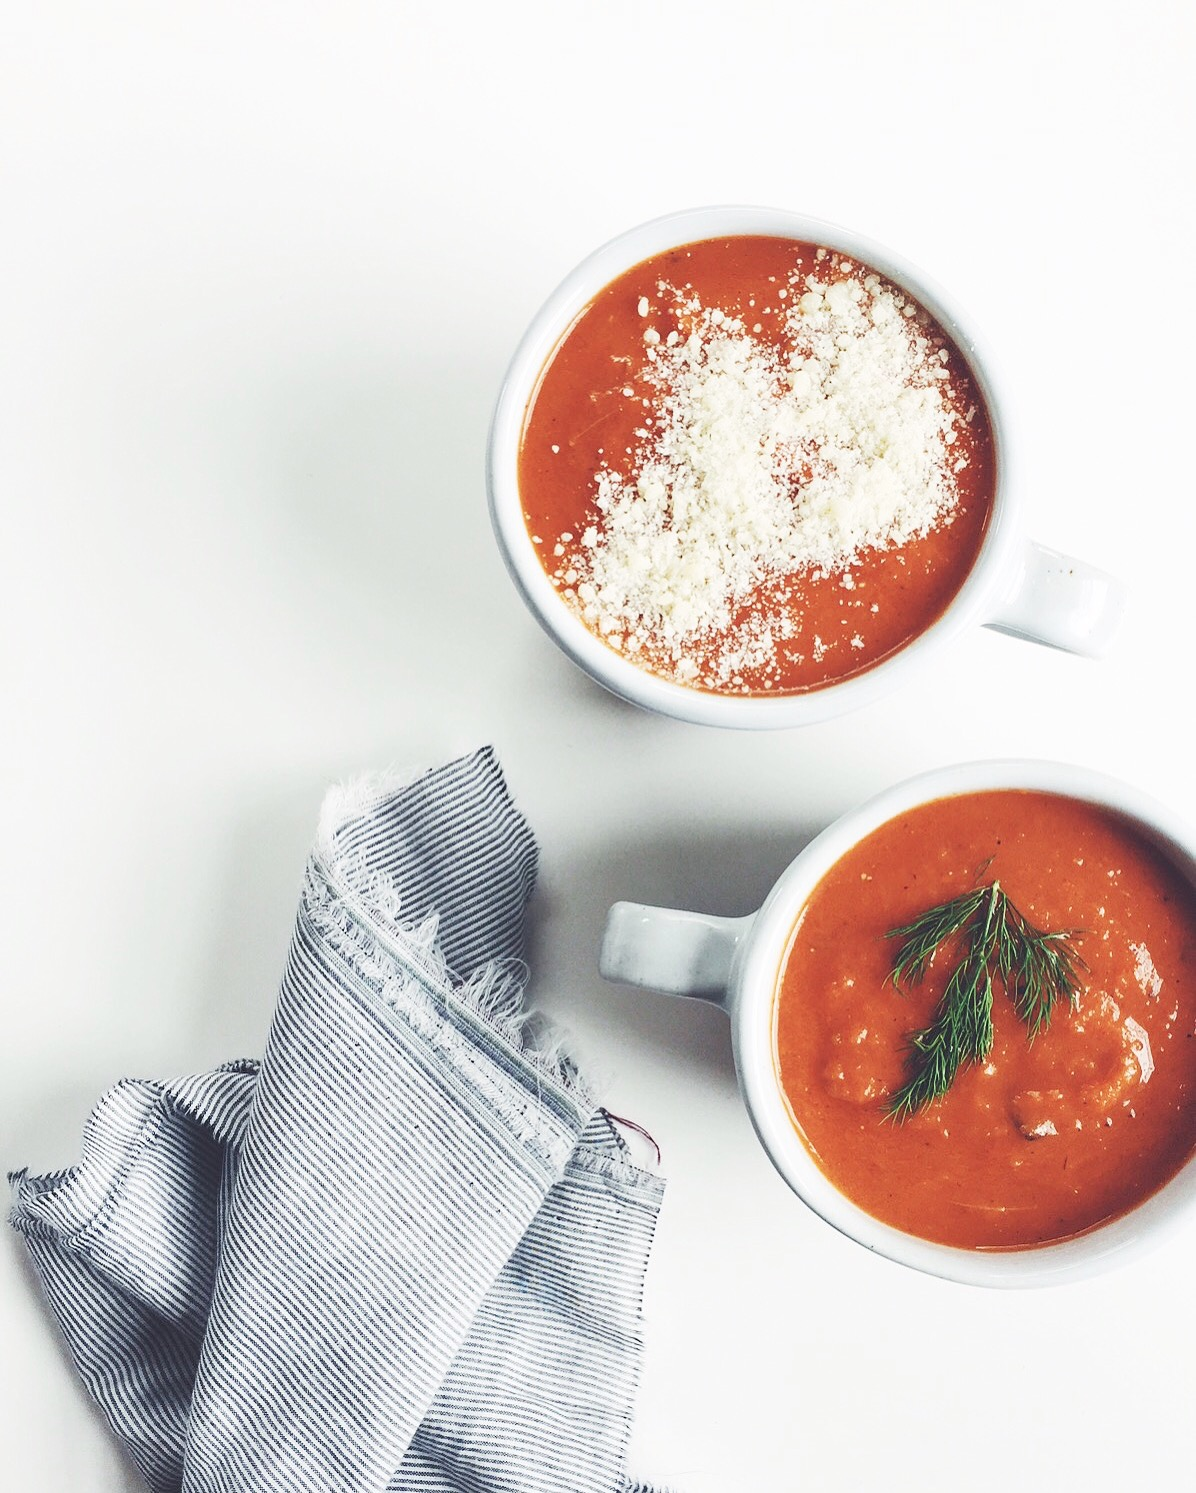 Easy Tomato-Carrot Soup via @simplyrealhealth. So quick and easy, gluten-free too!